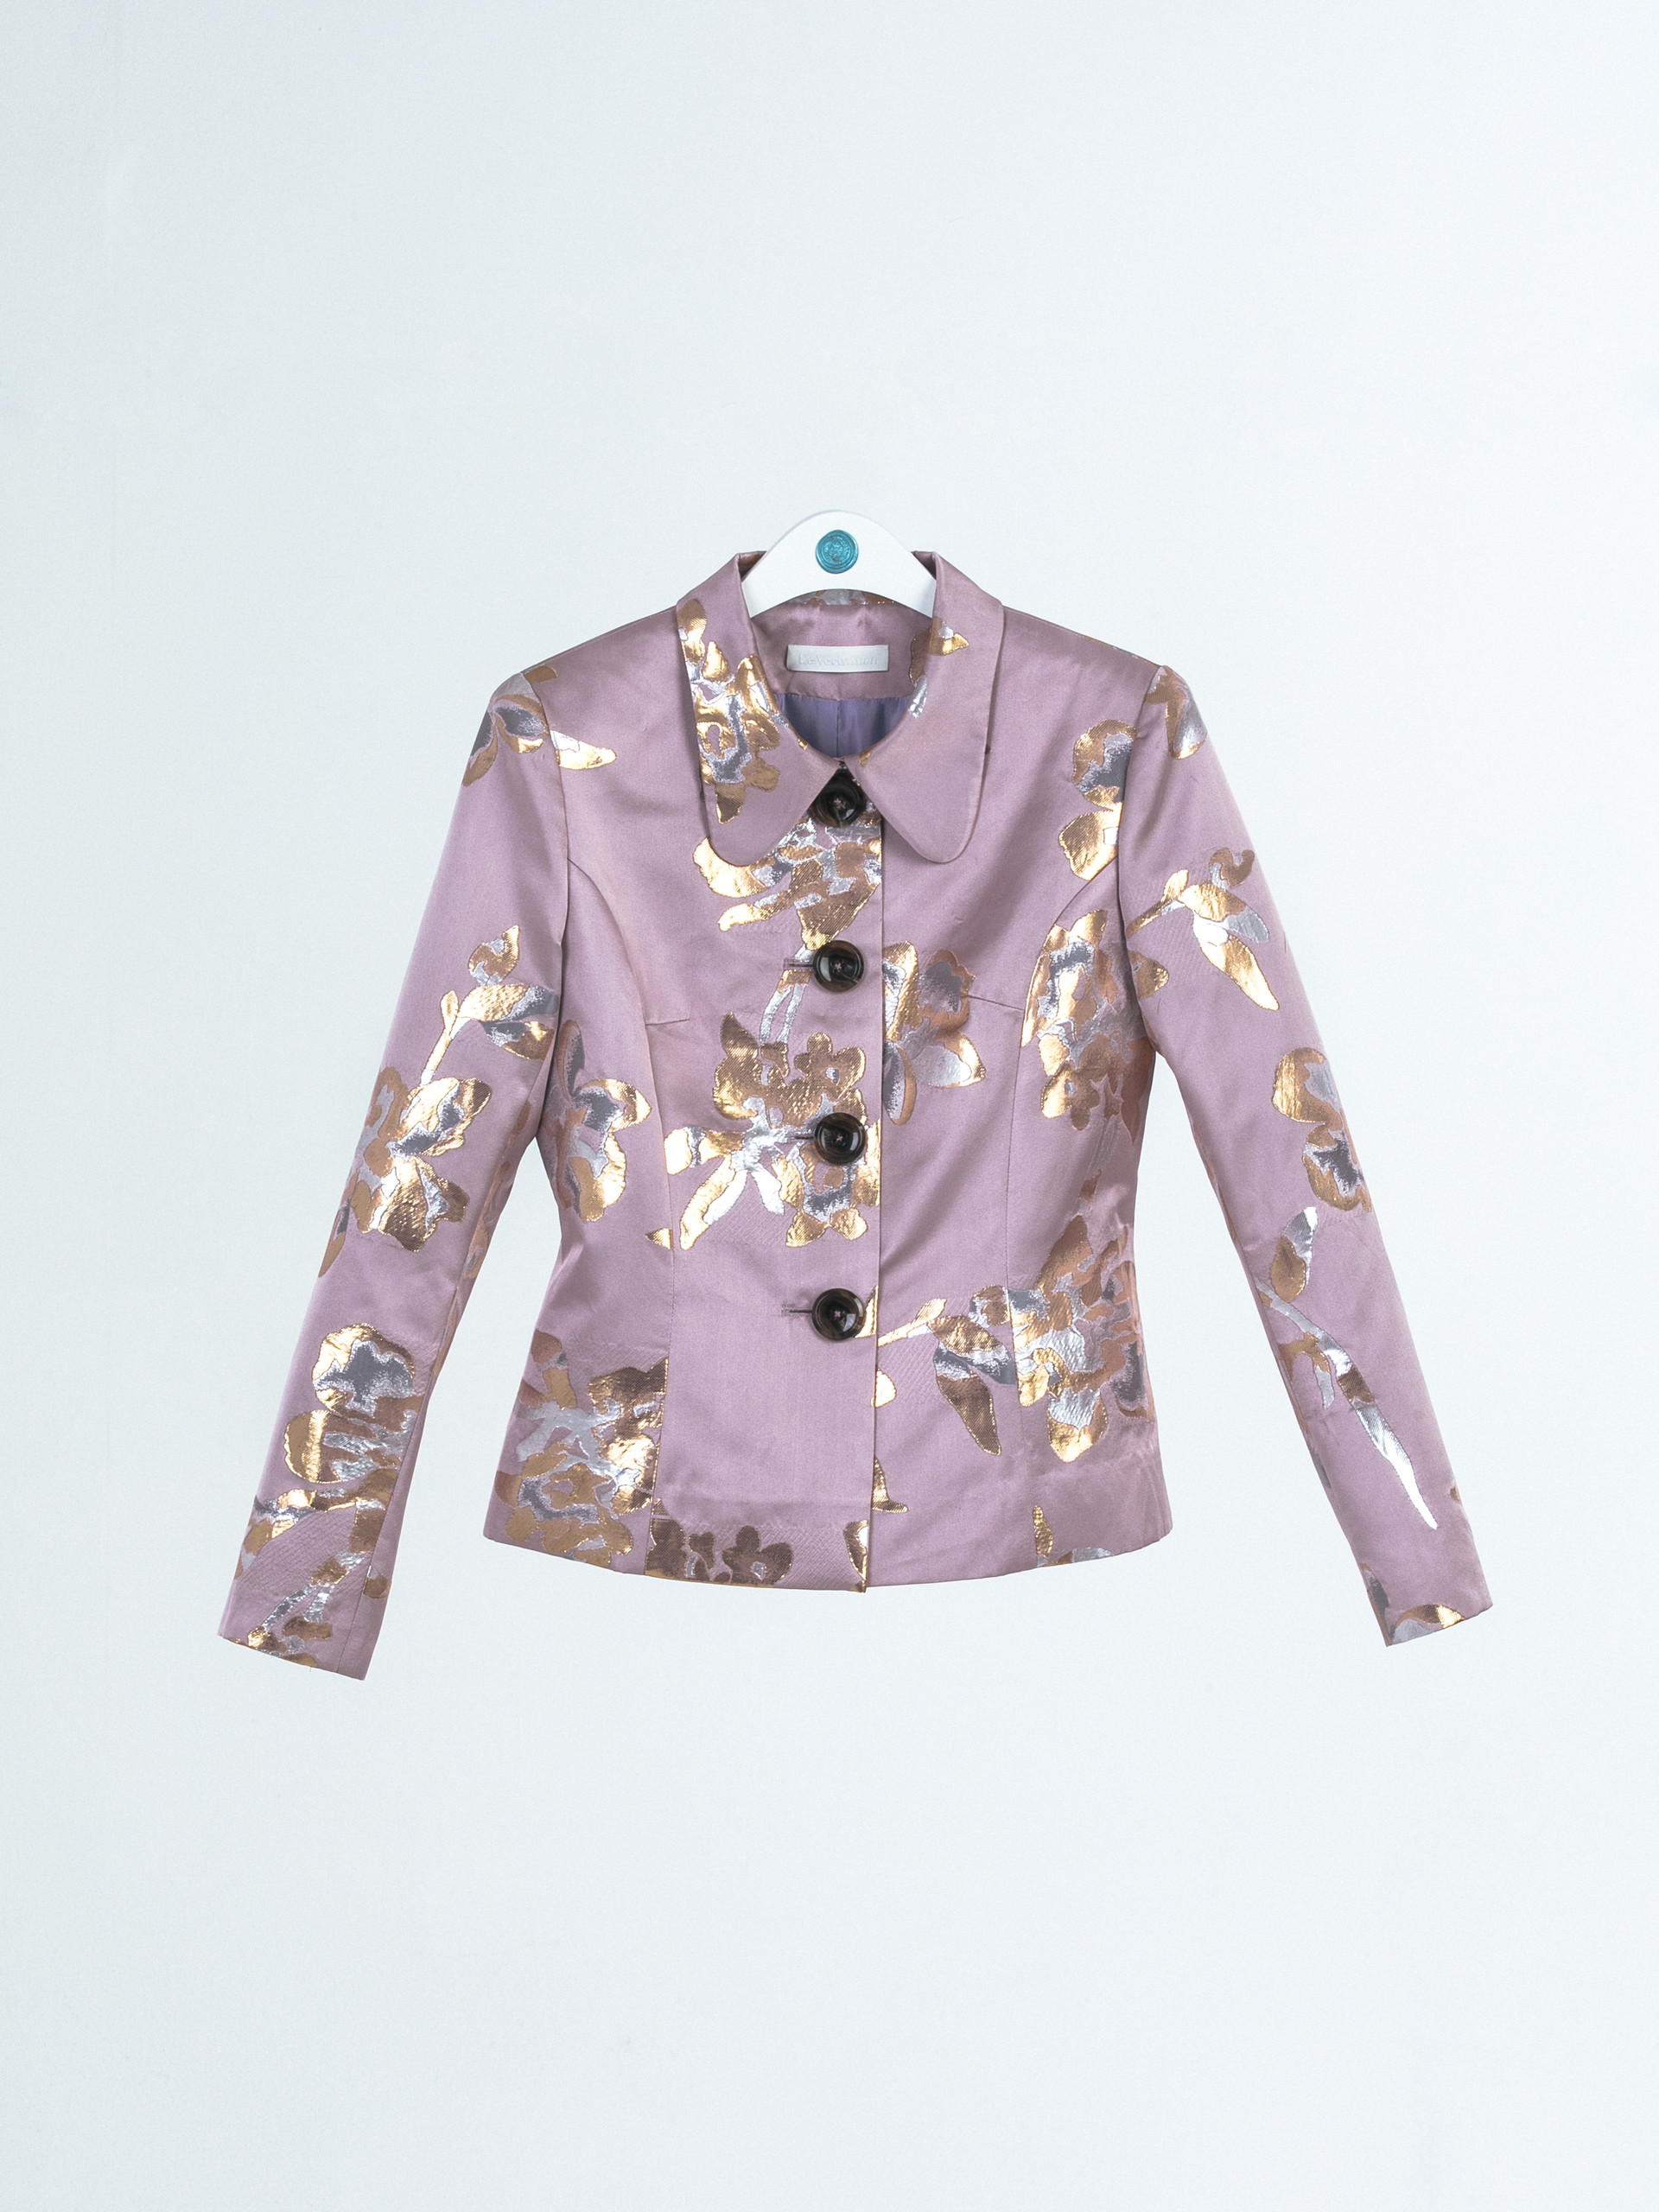 High quality jacquard gold thread brocade Jacket